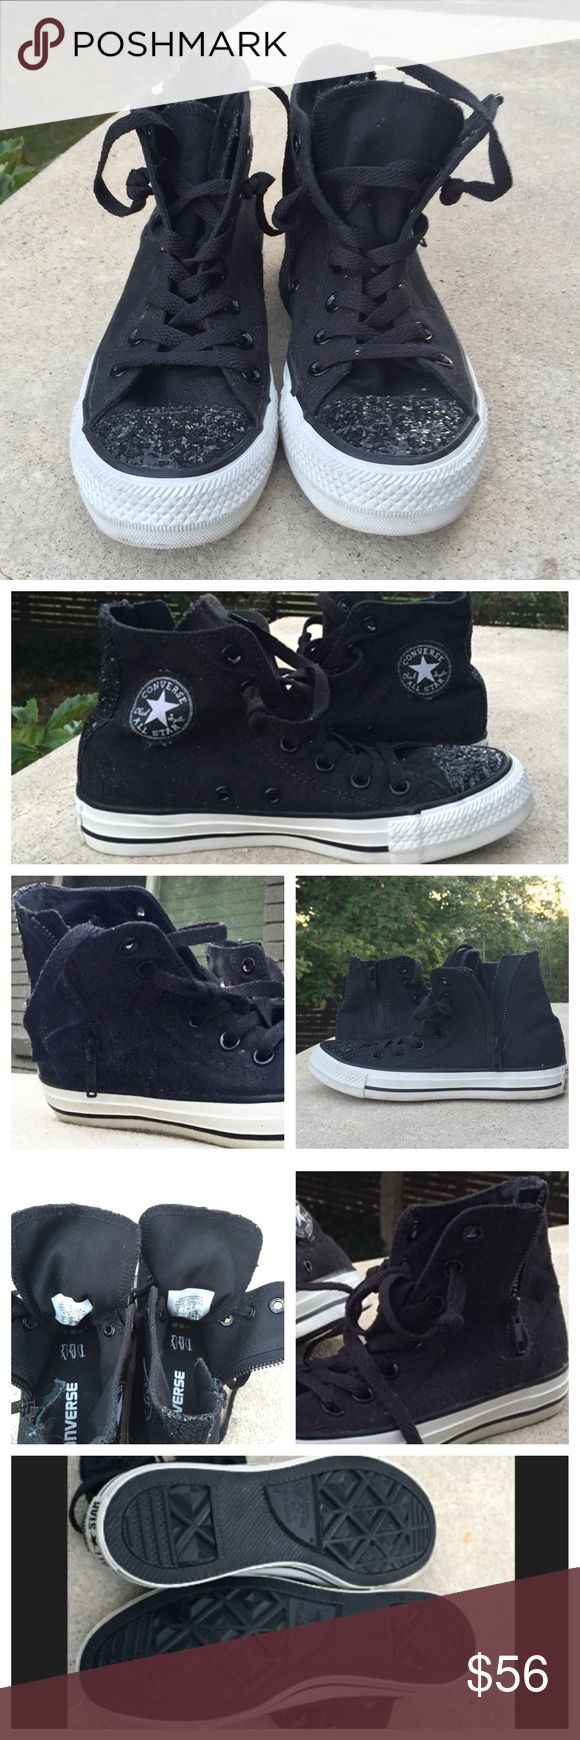 🌑RARE Sparke Toe CONVERSE🌑🍭 NEW RARE black hi-top CONVERSE with silver and black sparkes on the toes and in back of the heels.  Love these, but got the wrong size.  Womens size UK 4, US 6.  No box included. Converse Shoes Sneakers